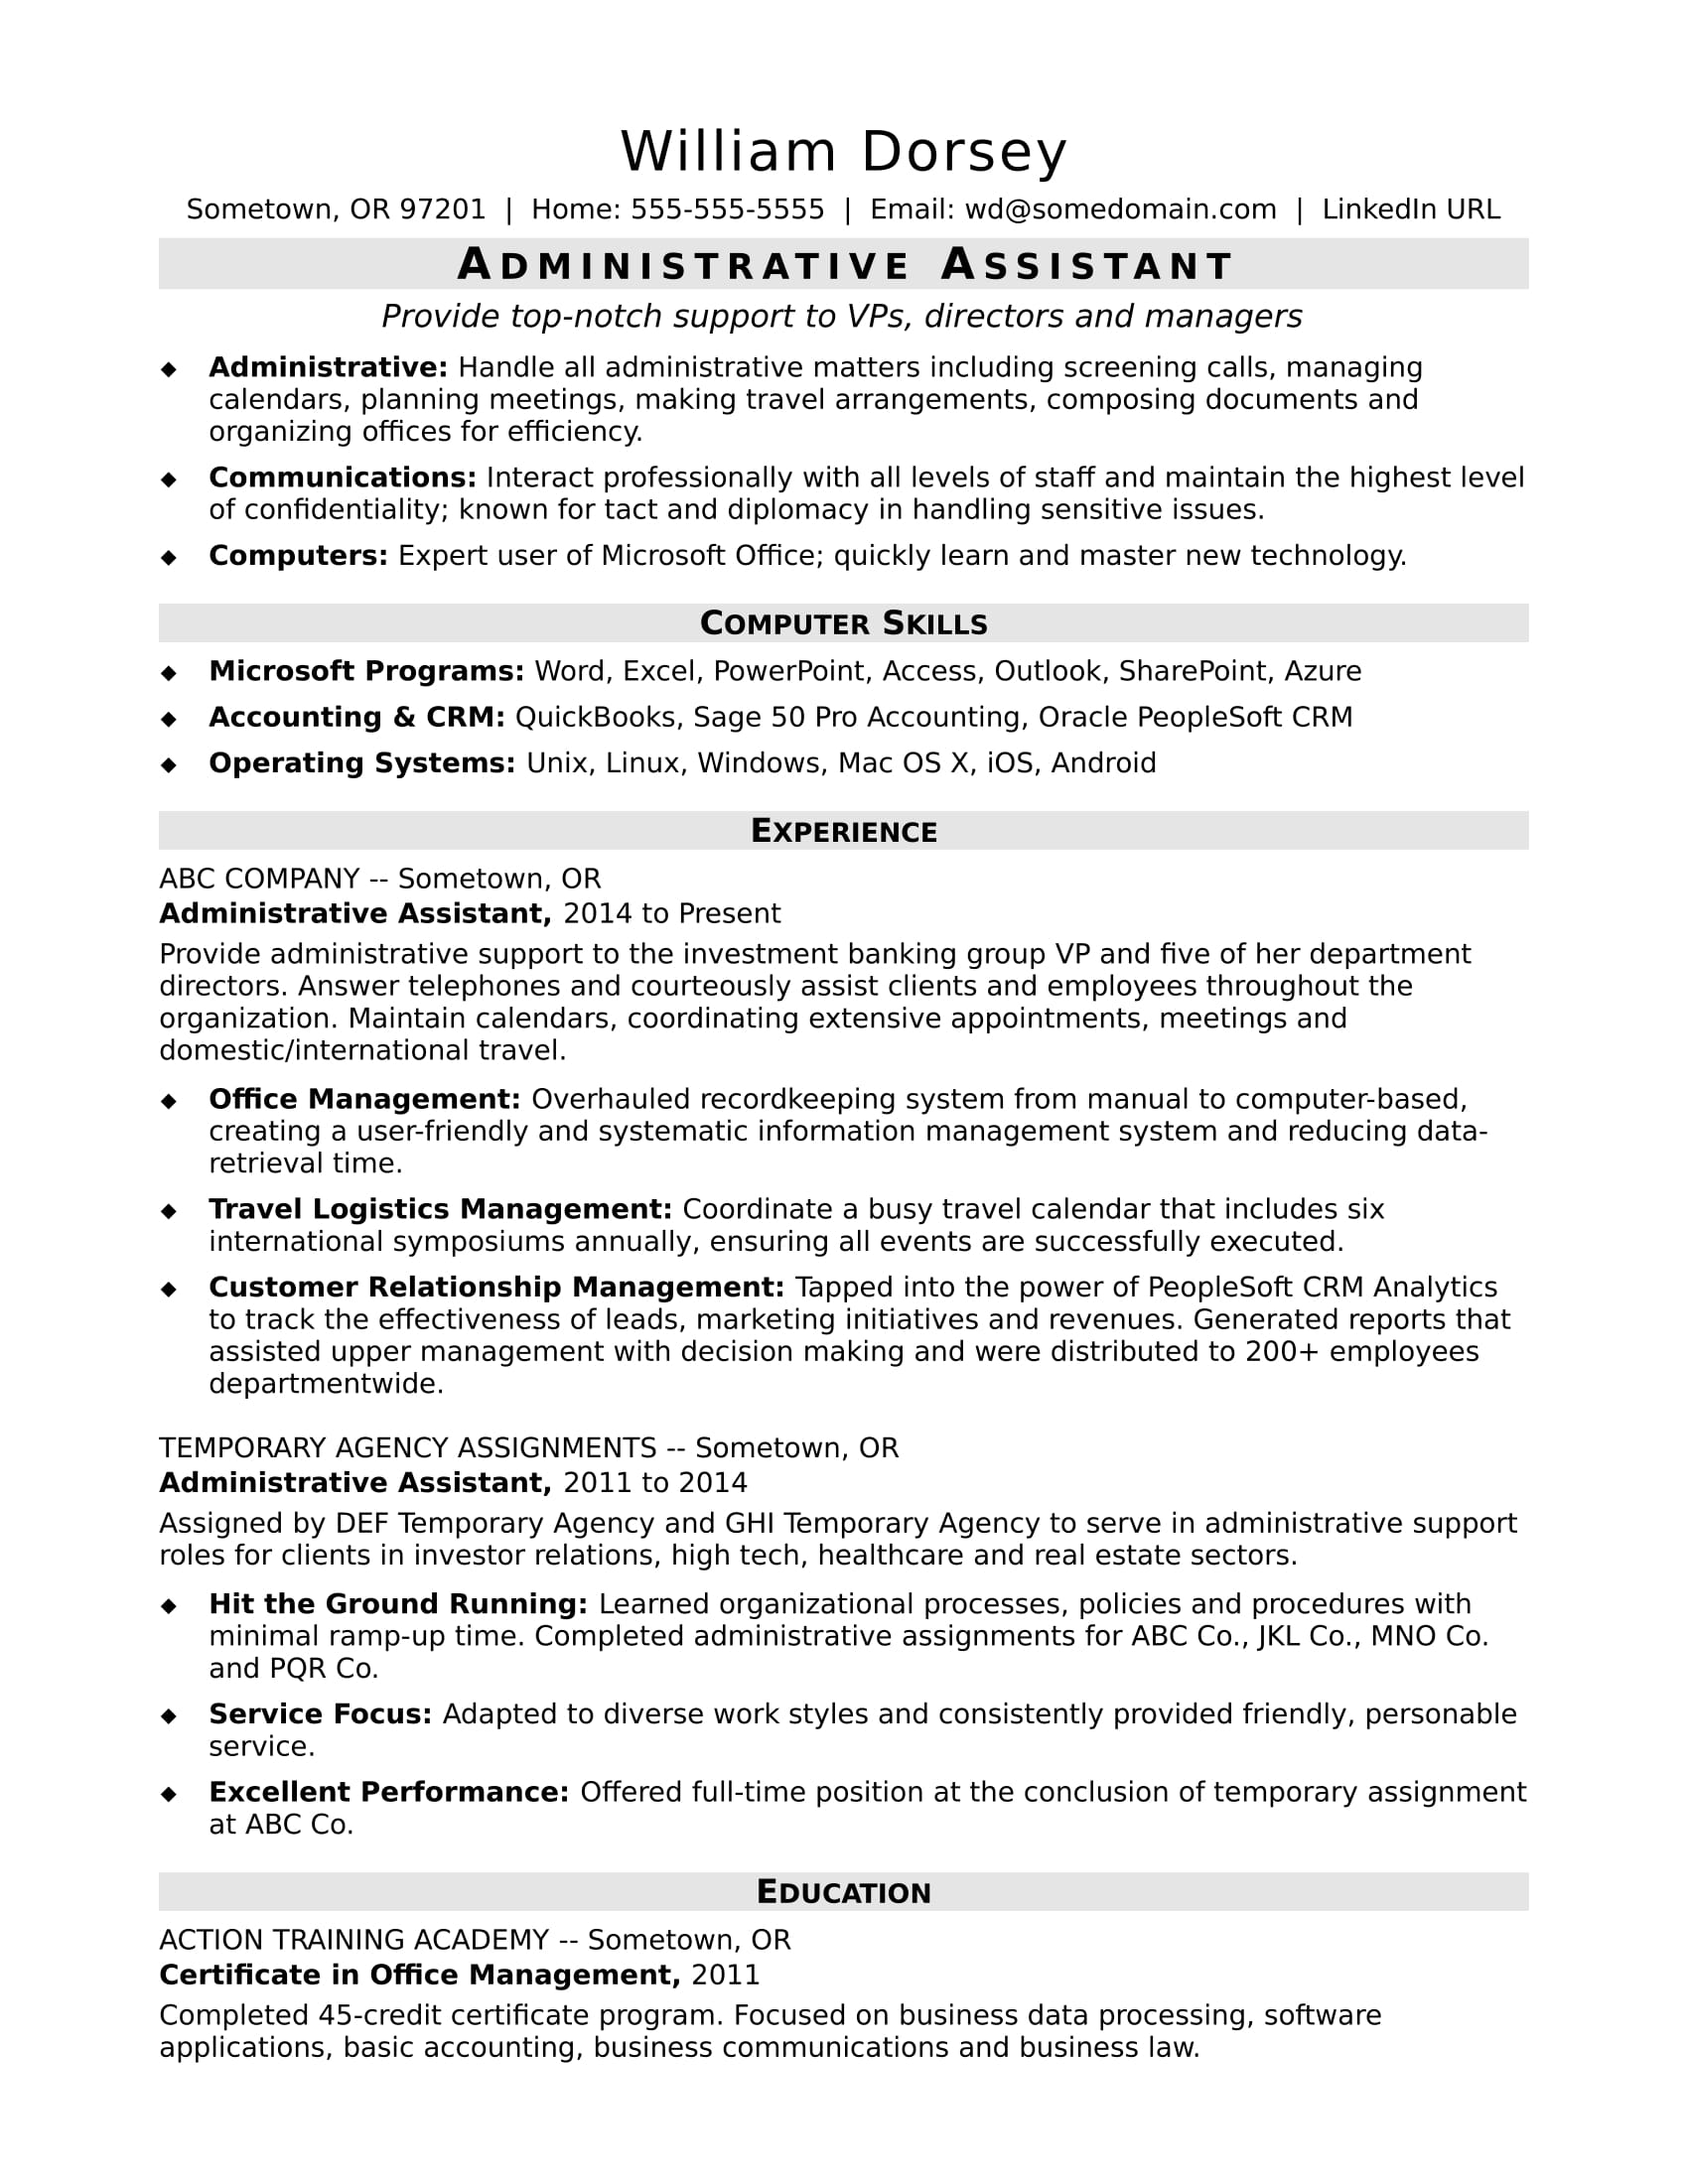 example of resume s on monster best teh example of resume s on monster resume samples monster resume builder resume s how to post